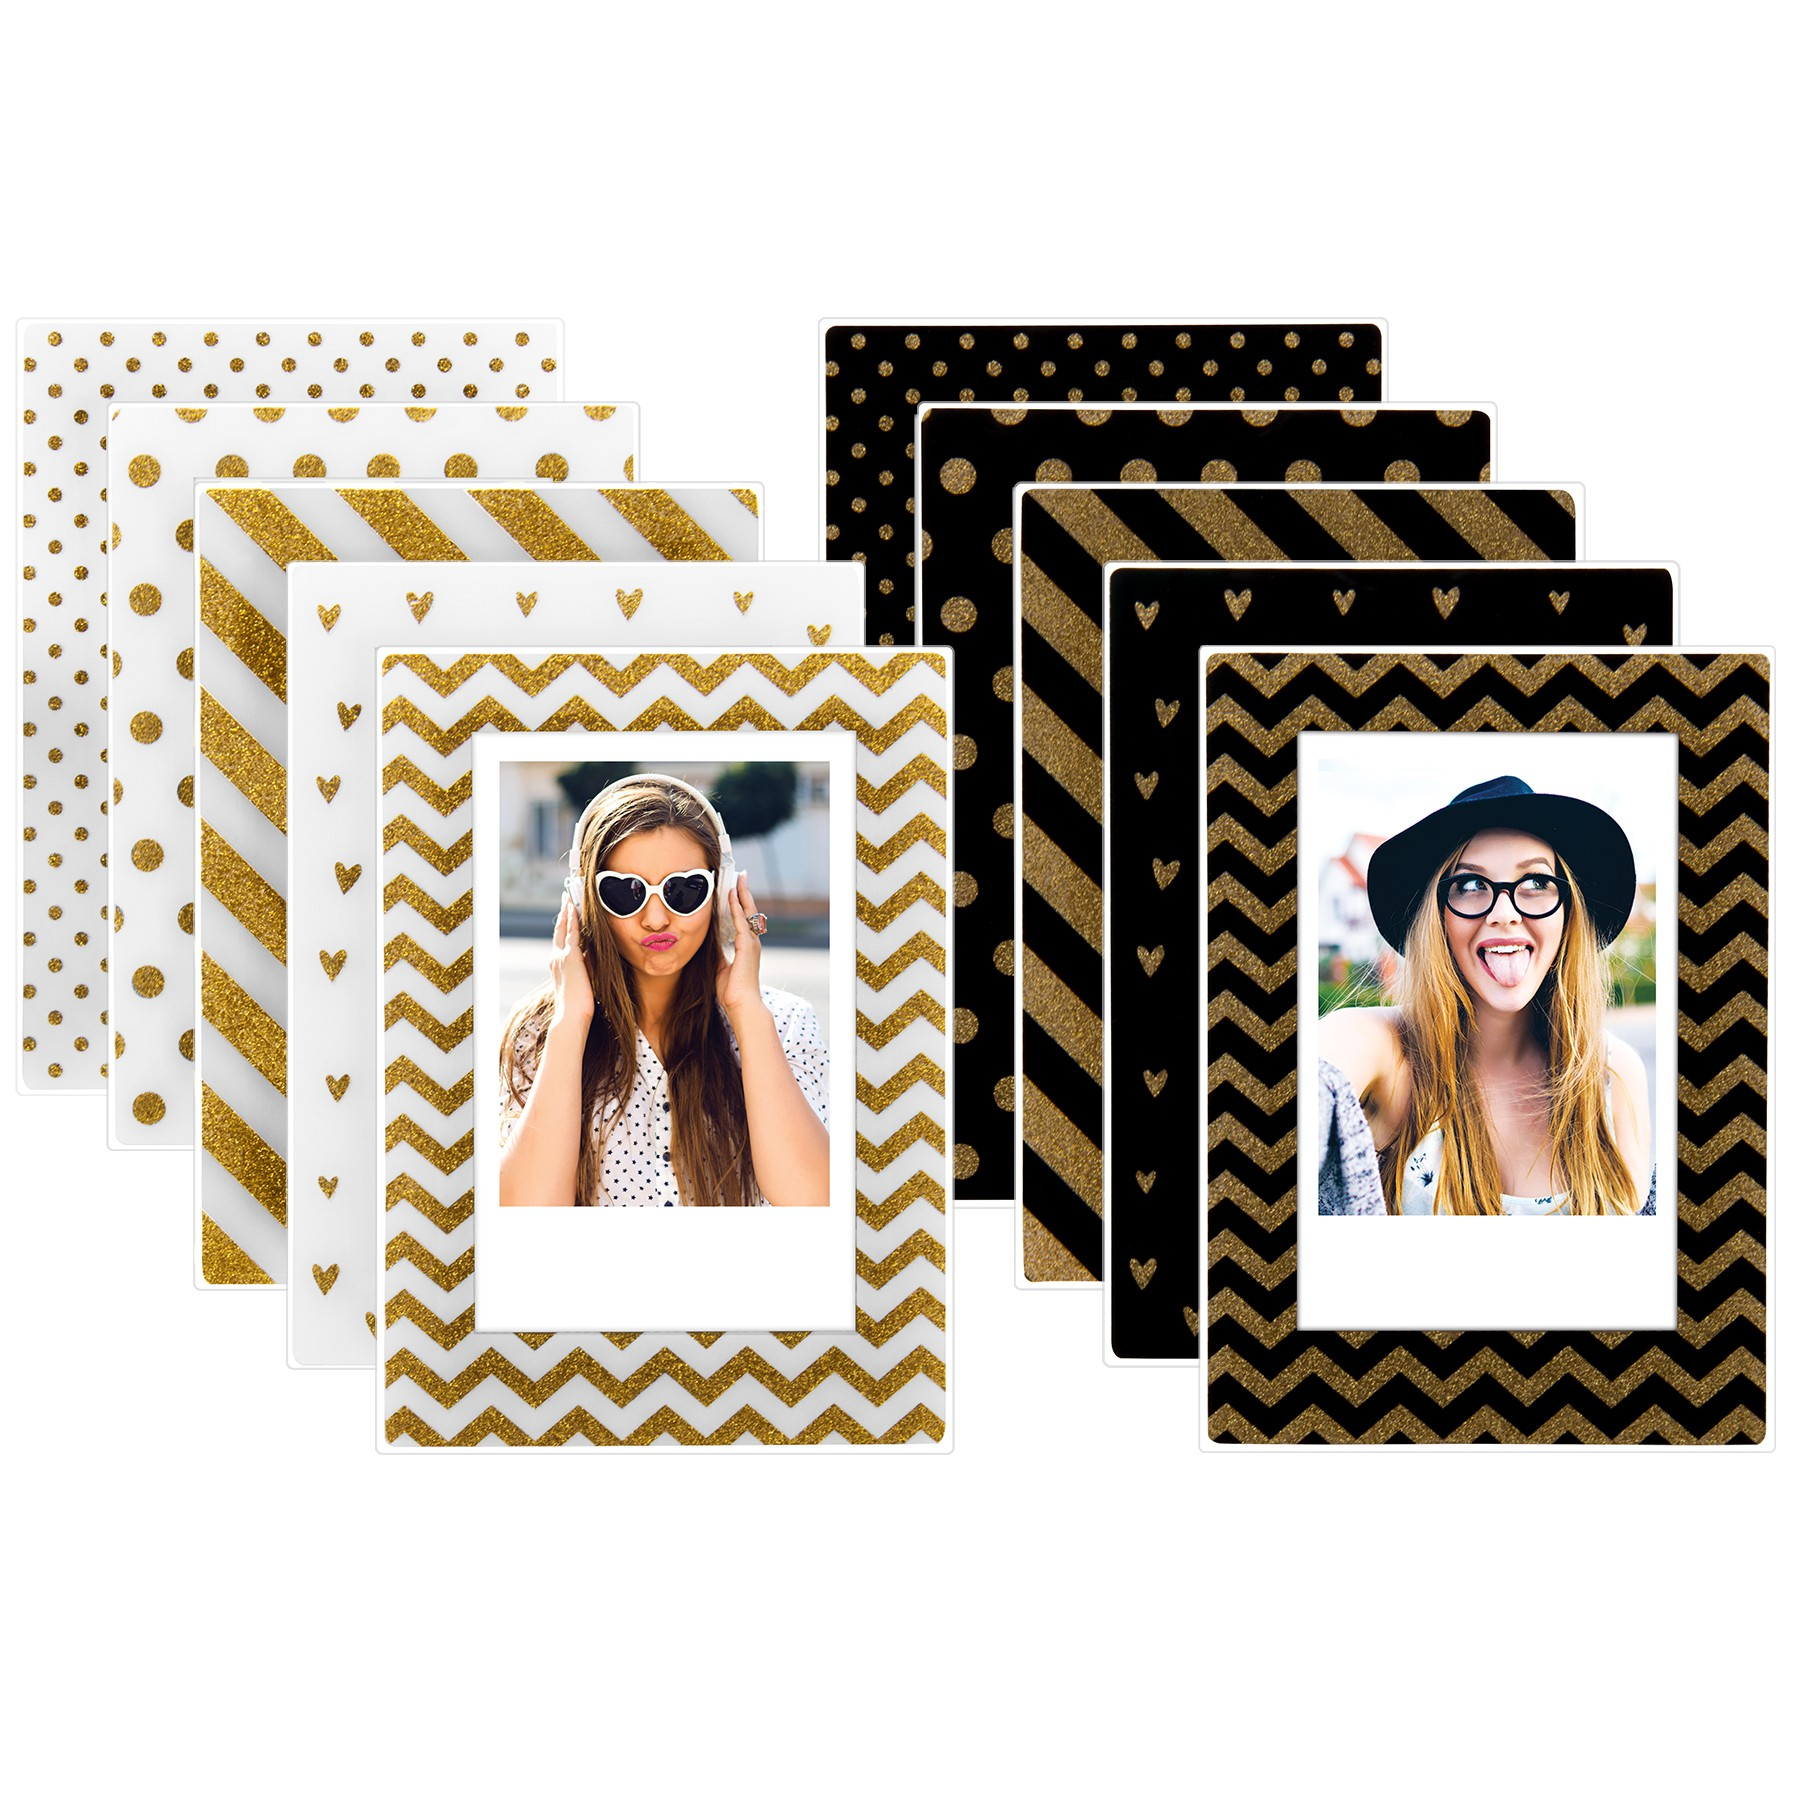 Wholesale instax mini magnetic picture frames neil enterprises wholesale instax mini magnetic plastic picture frame 10 pack jeuxipadfo Gallery